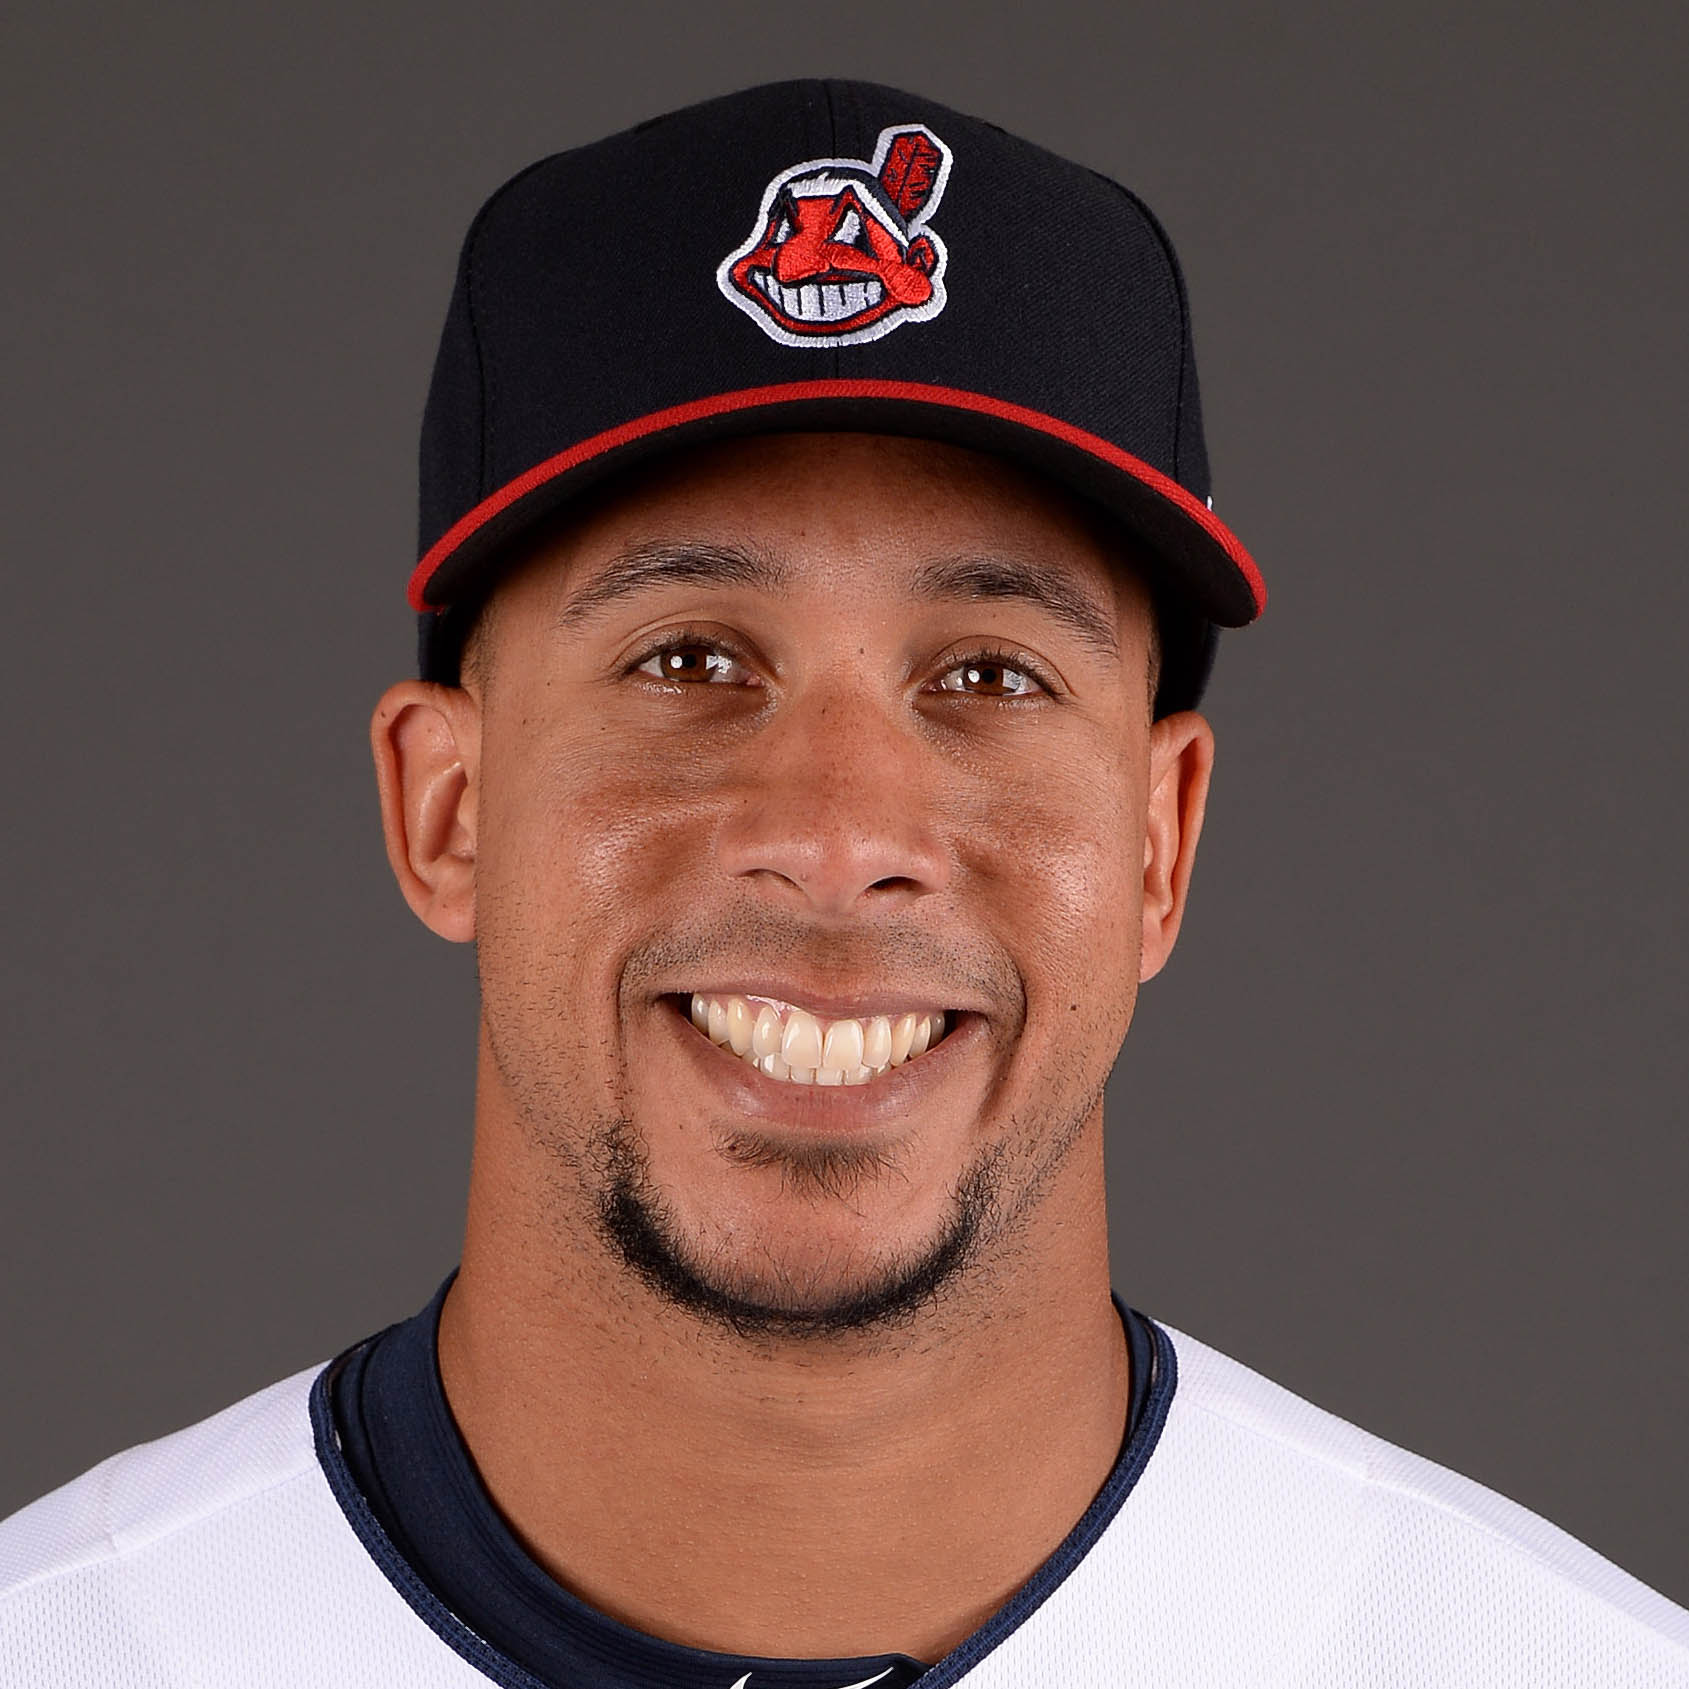 Michael Brantley (L) Headshot